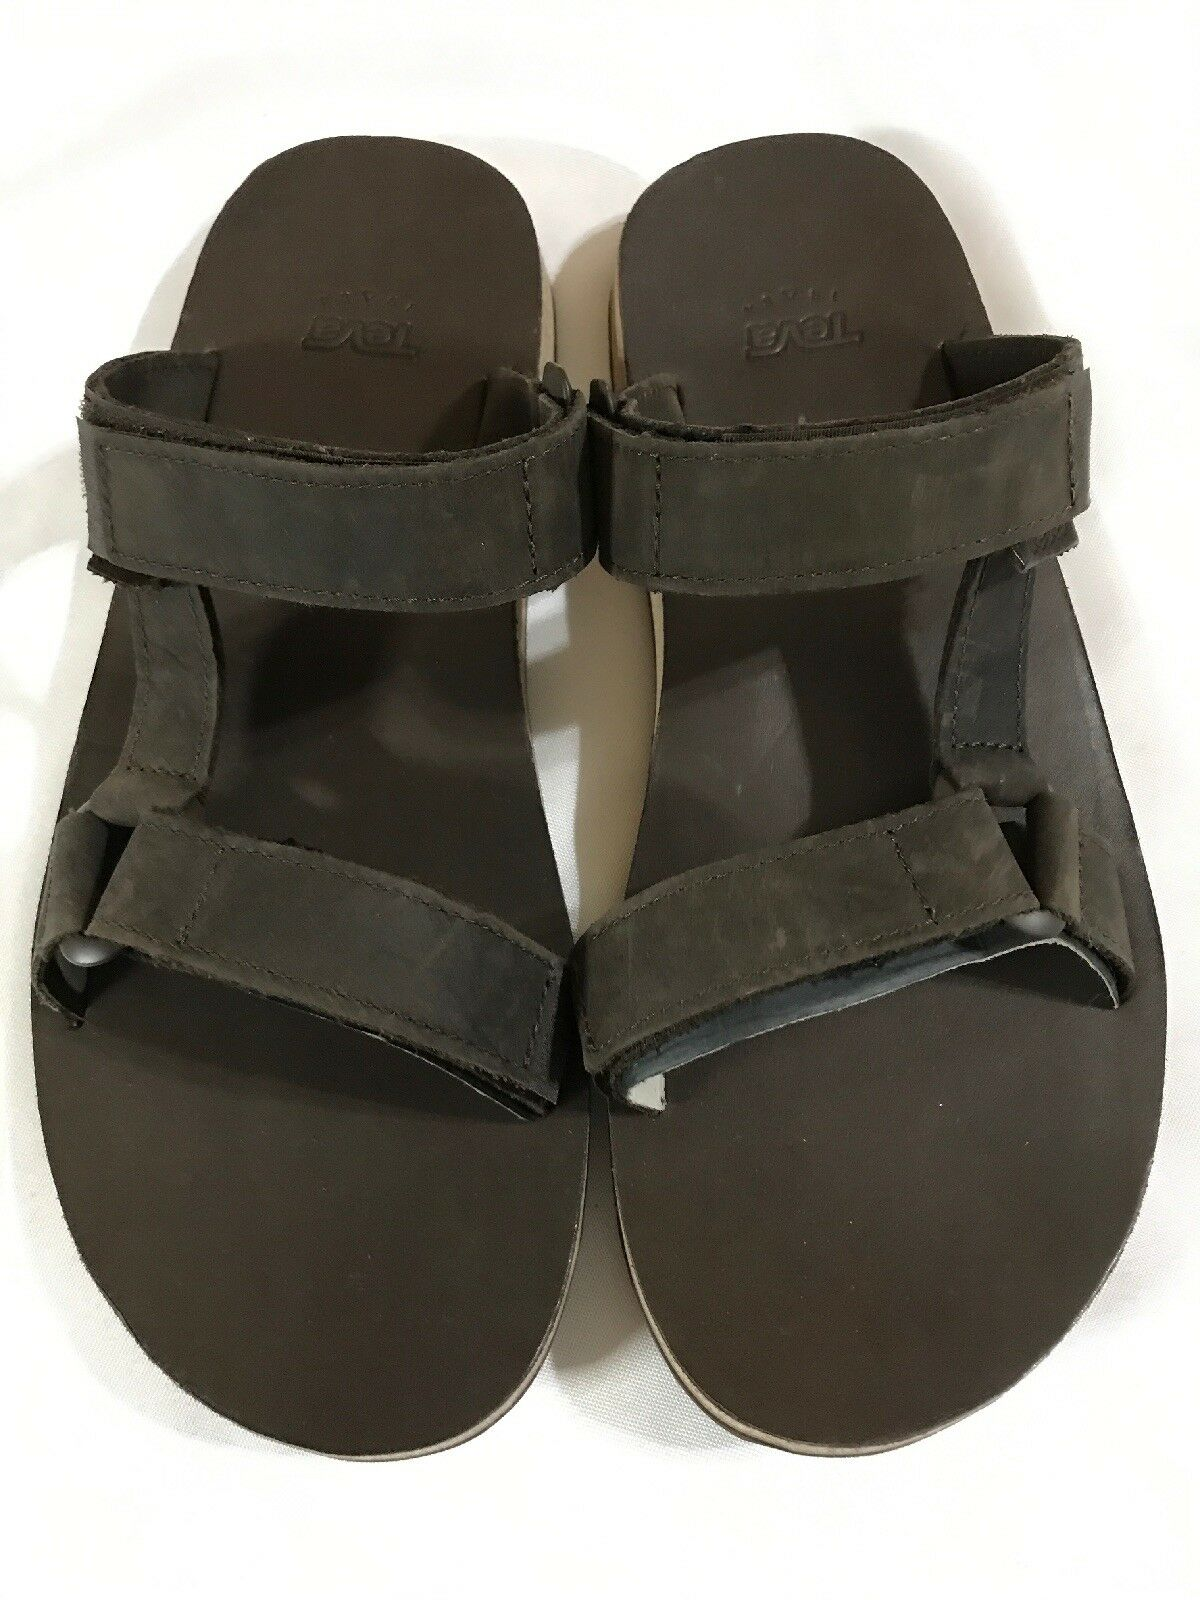 Teva Mens Universal Slides Size 11 Brown Synthetic Strap Sandals shoes